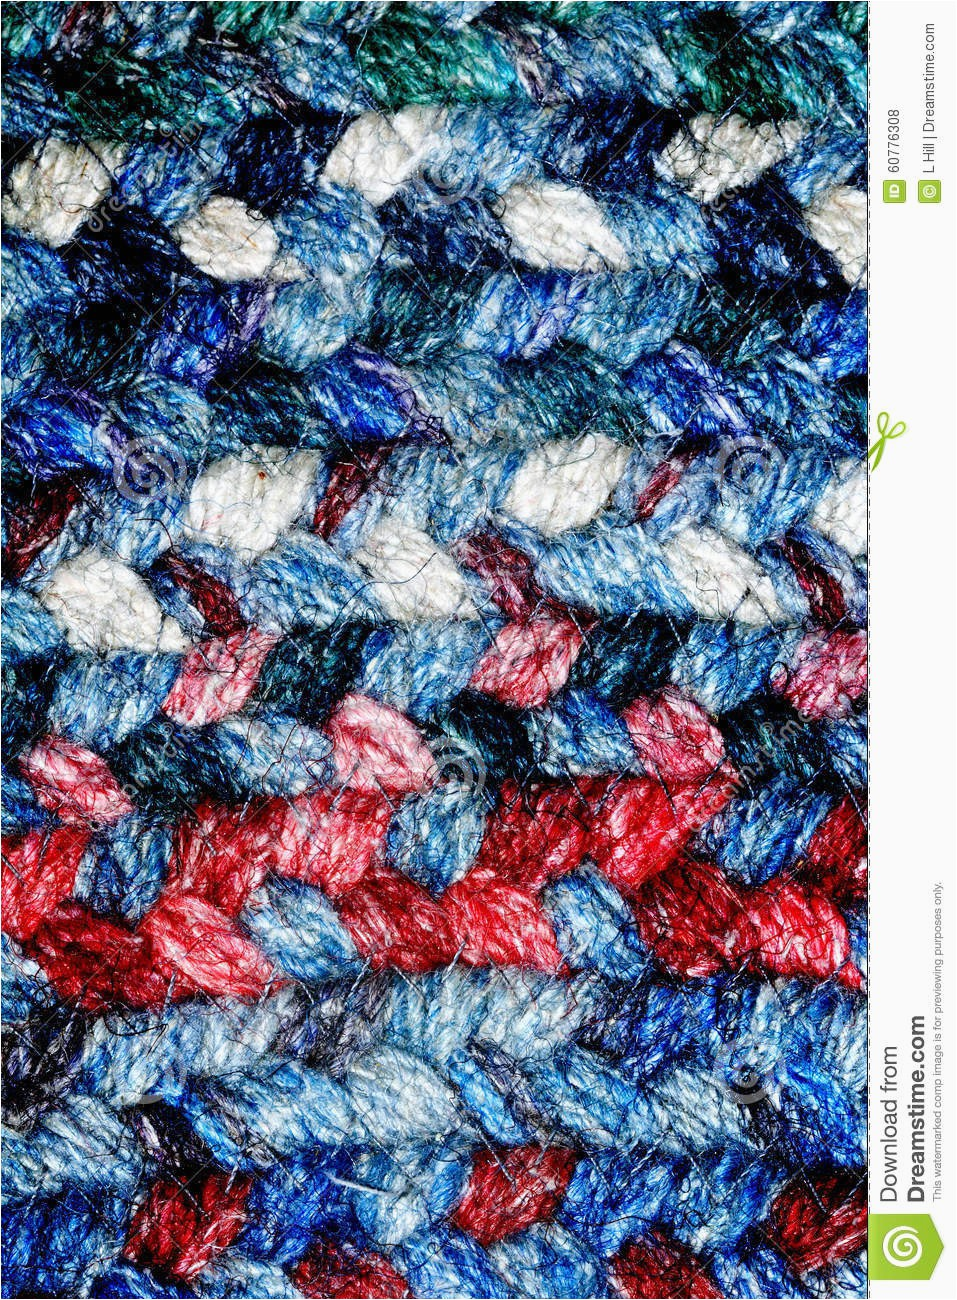 Red White and Blue Braided Rugs Red White and Blue Braided Rug Stock Image Of